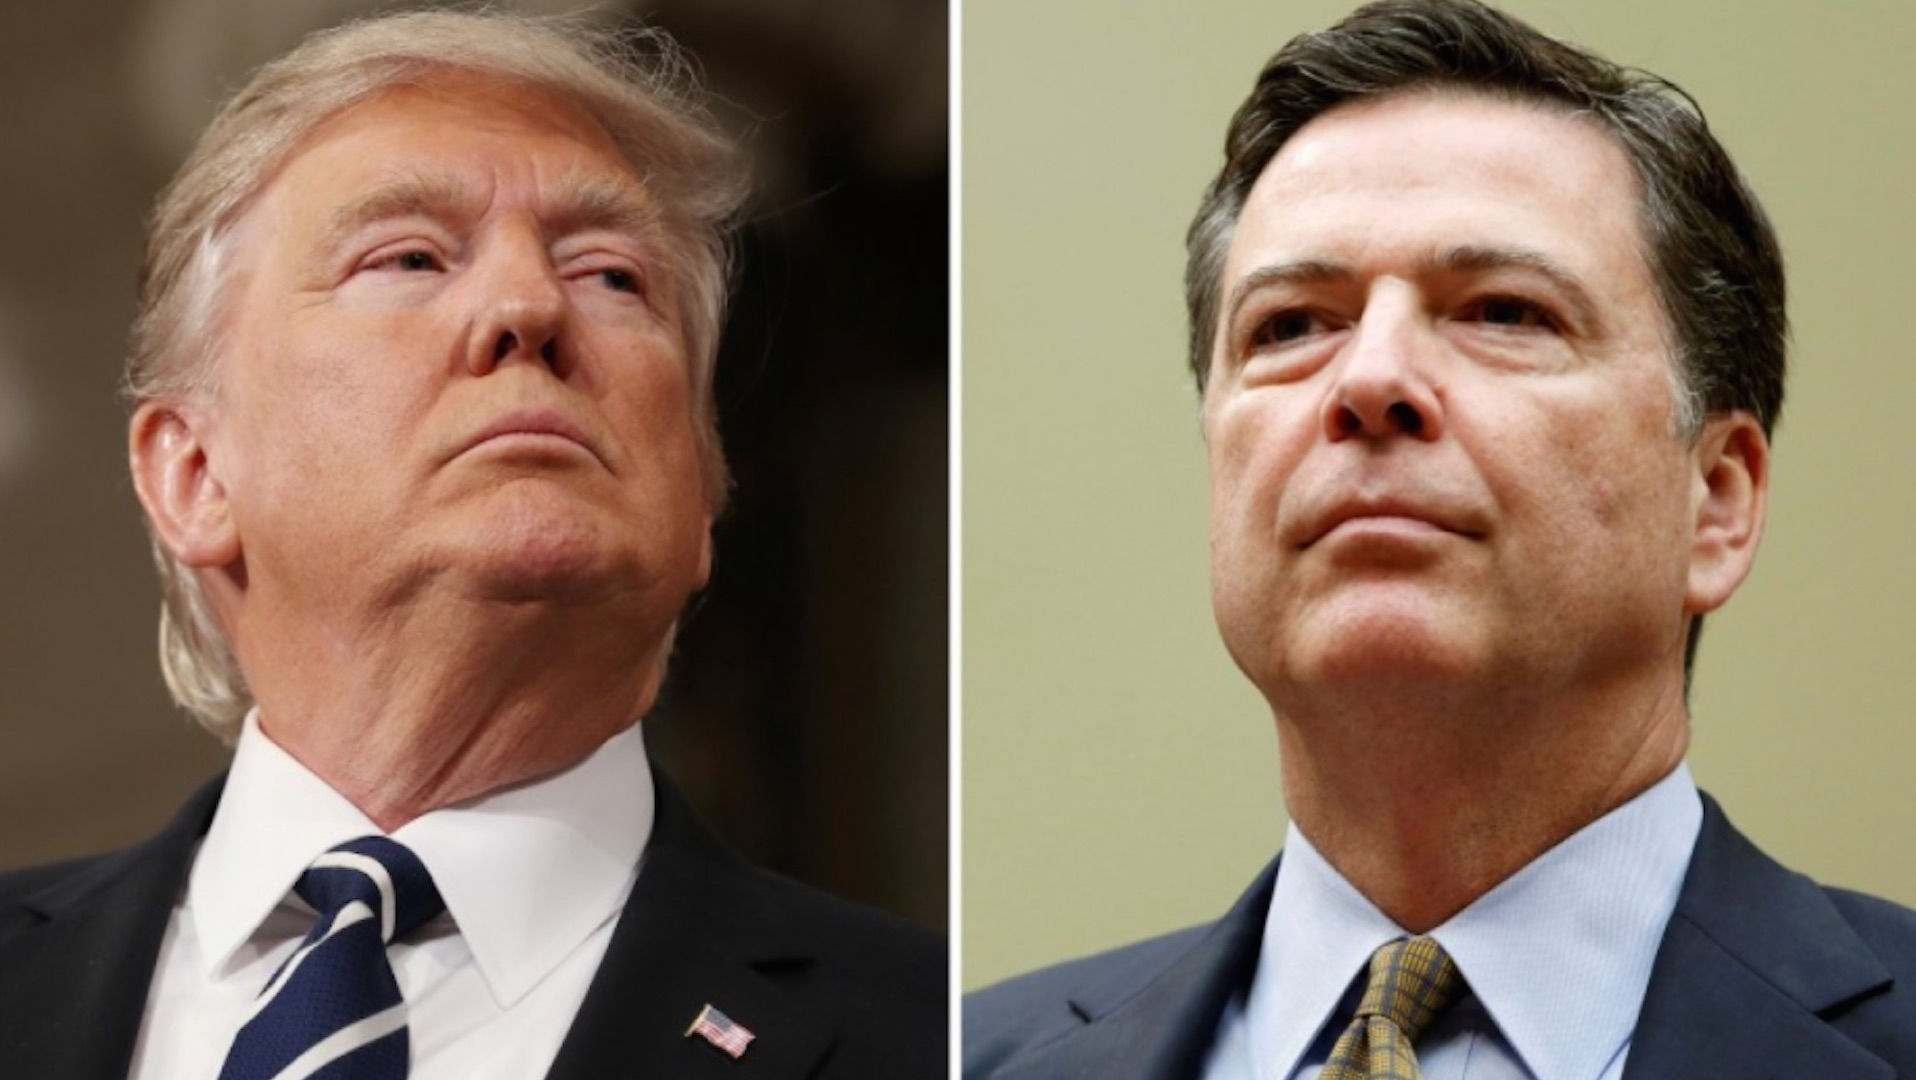 Trump watches as senators criticize him on TV for firing Comey. He hits back with mocking taunts